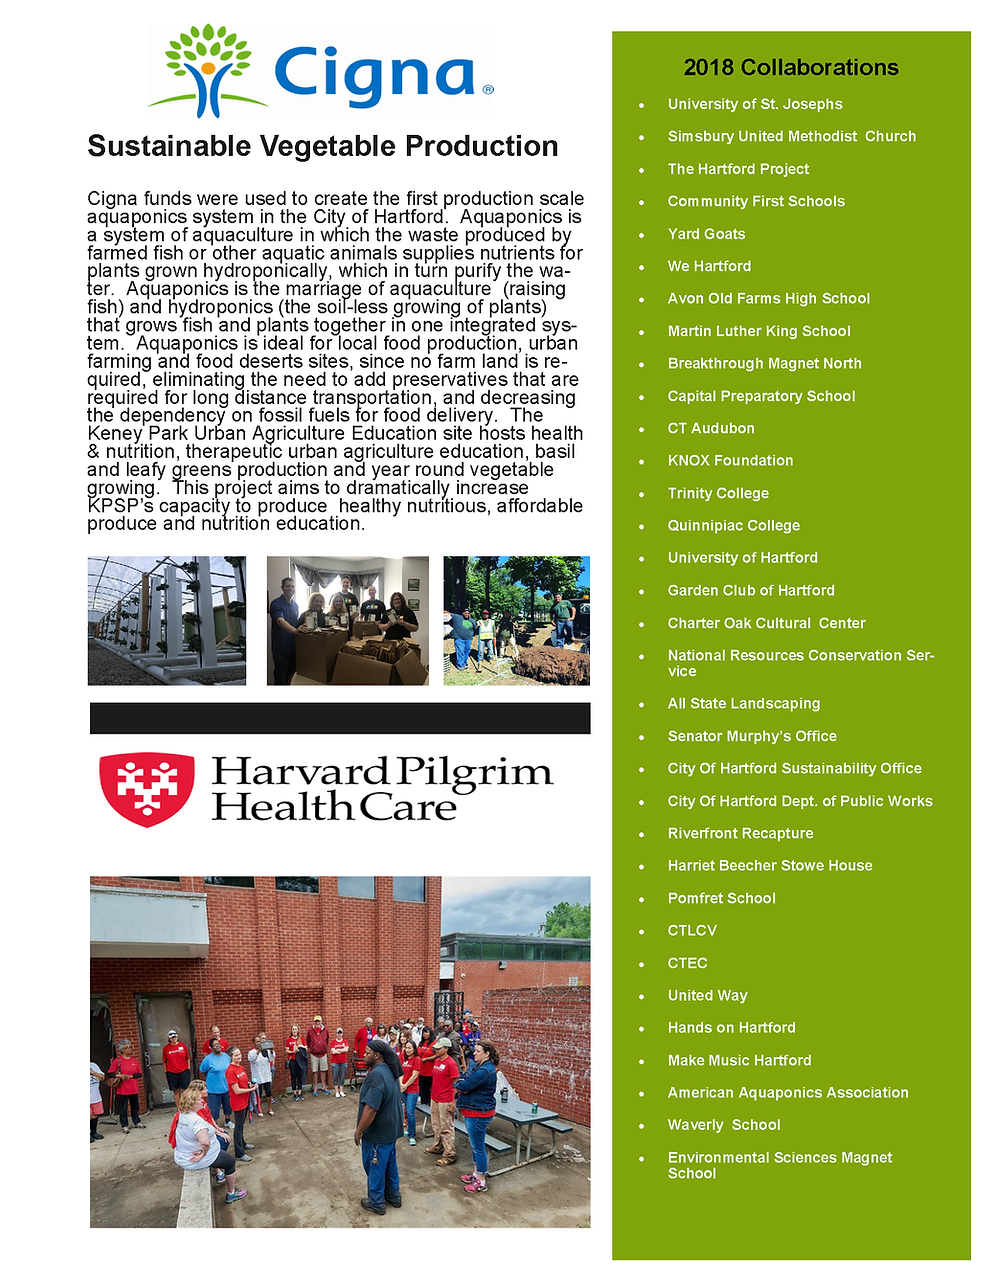 2018 annual report_Page_2.png